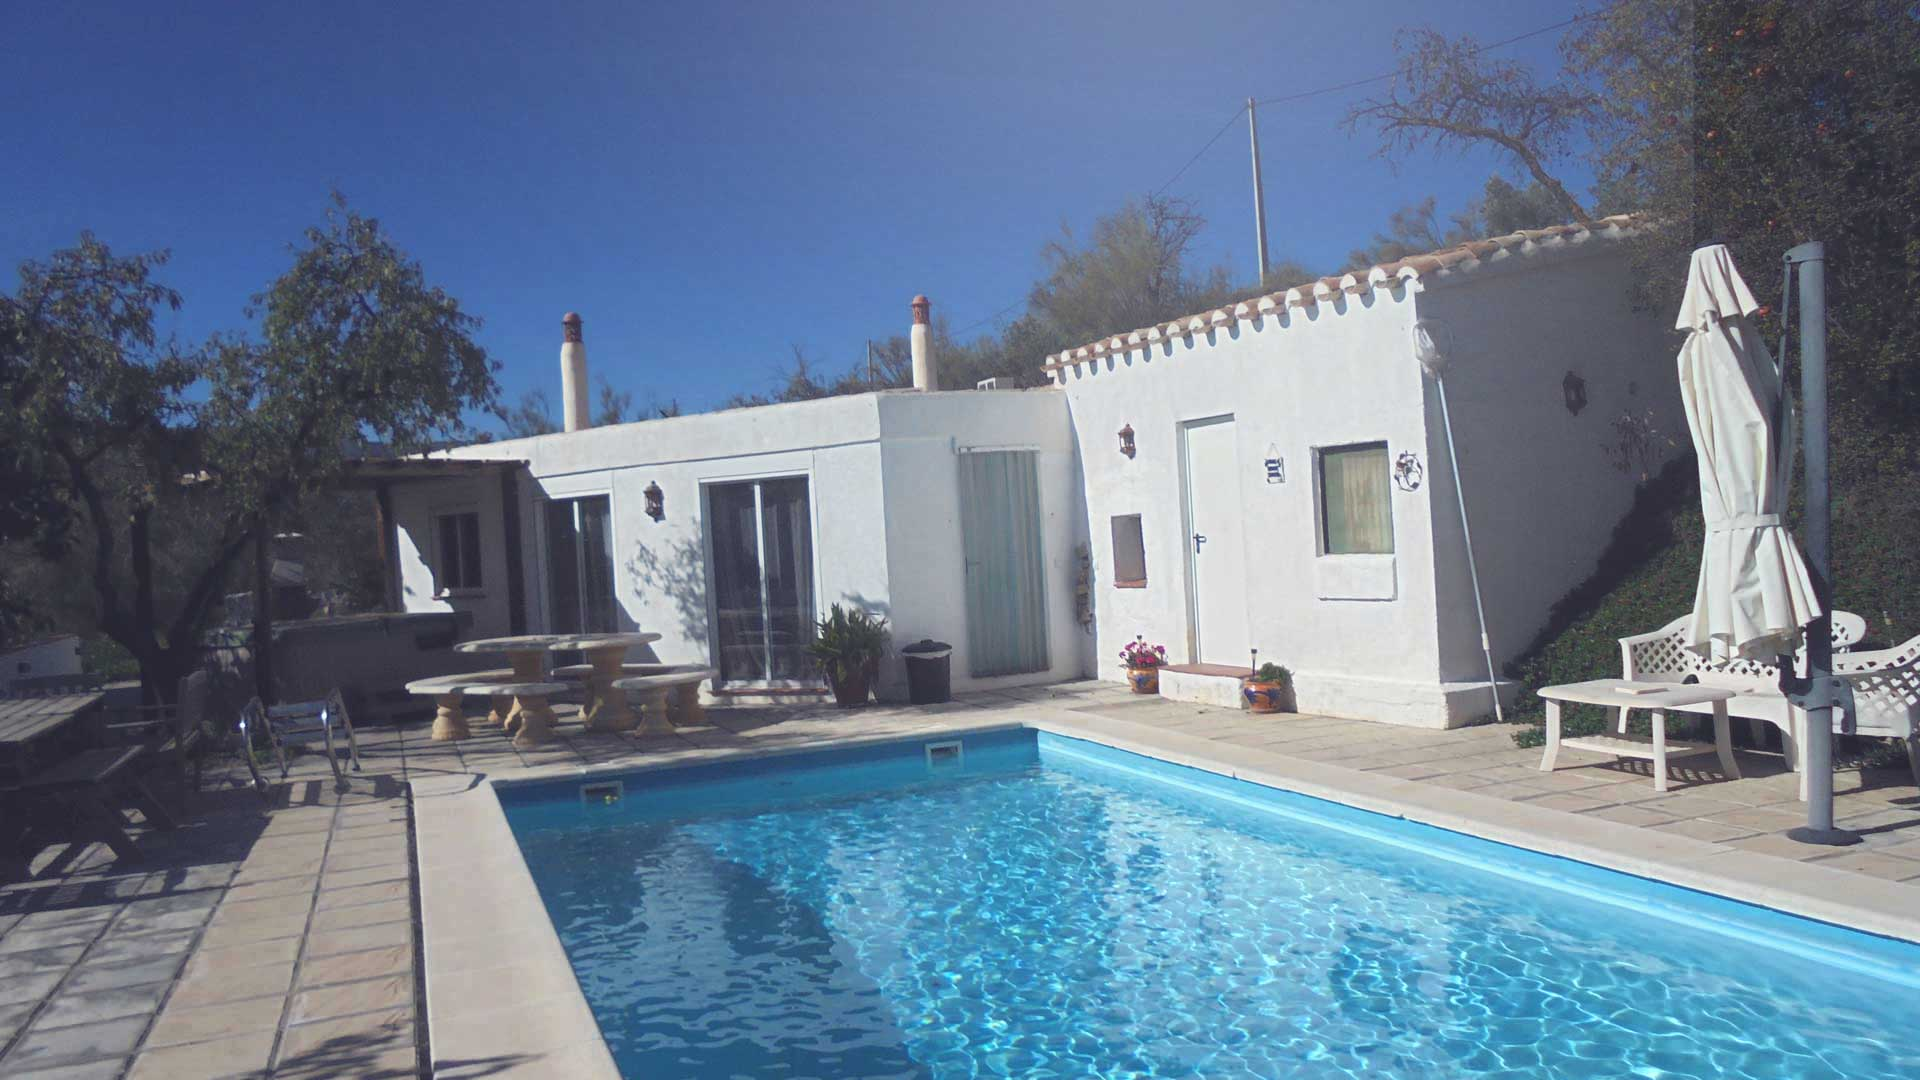 Pool Area | Casa Tranquila Seron | Almeria | Spain | Apartments to Rent